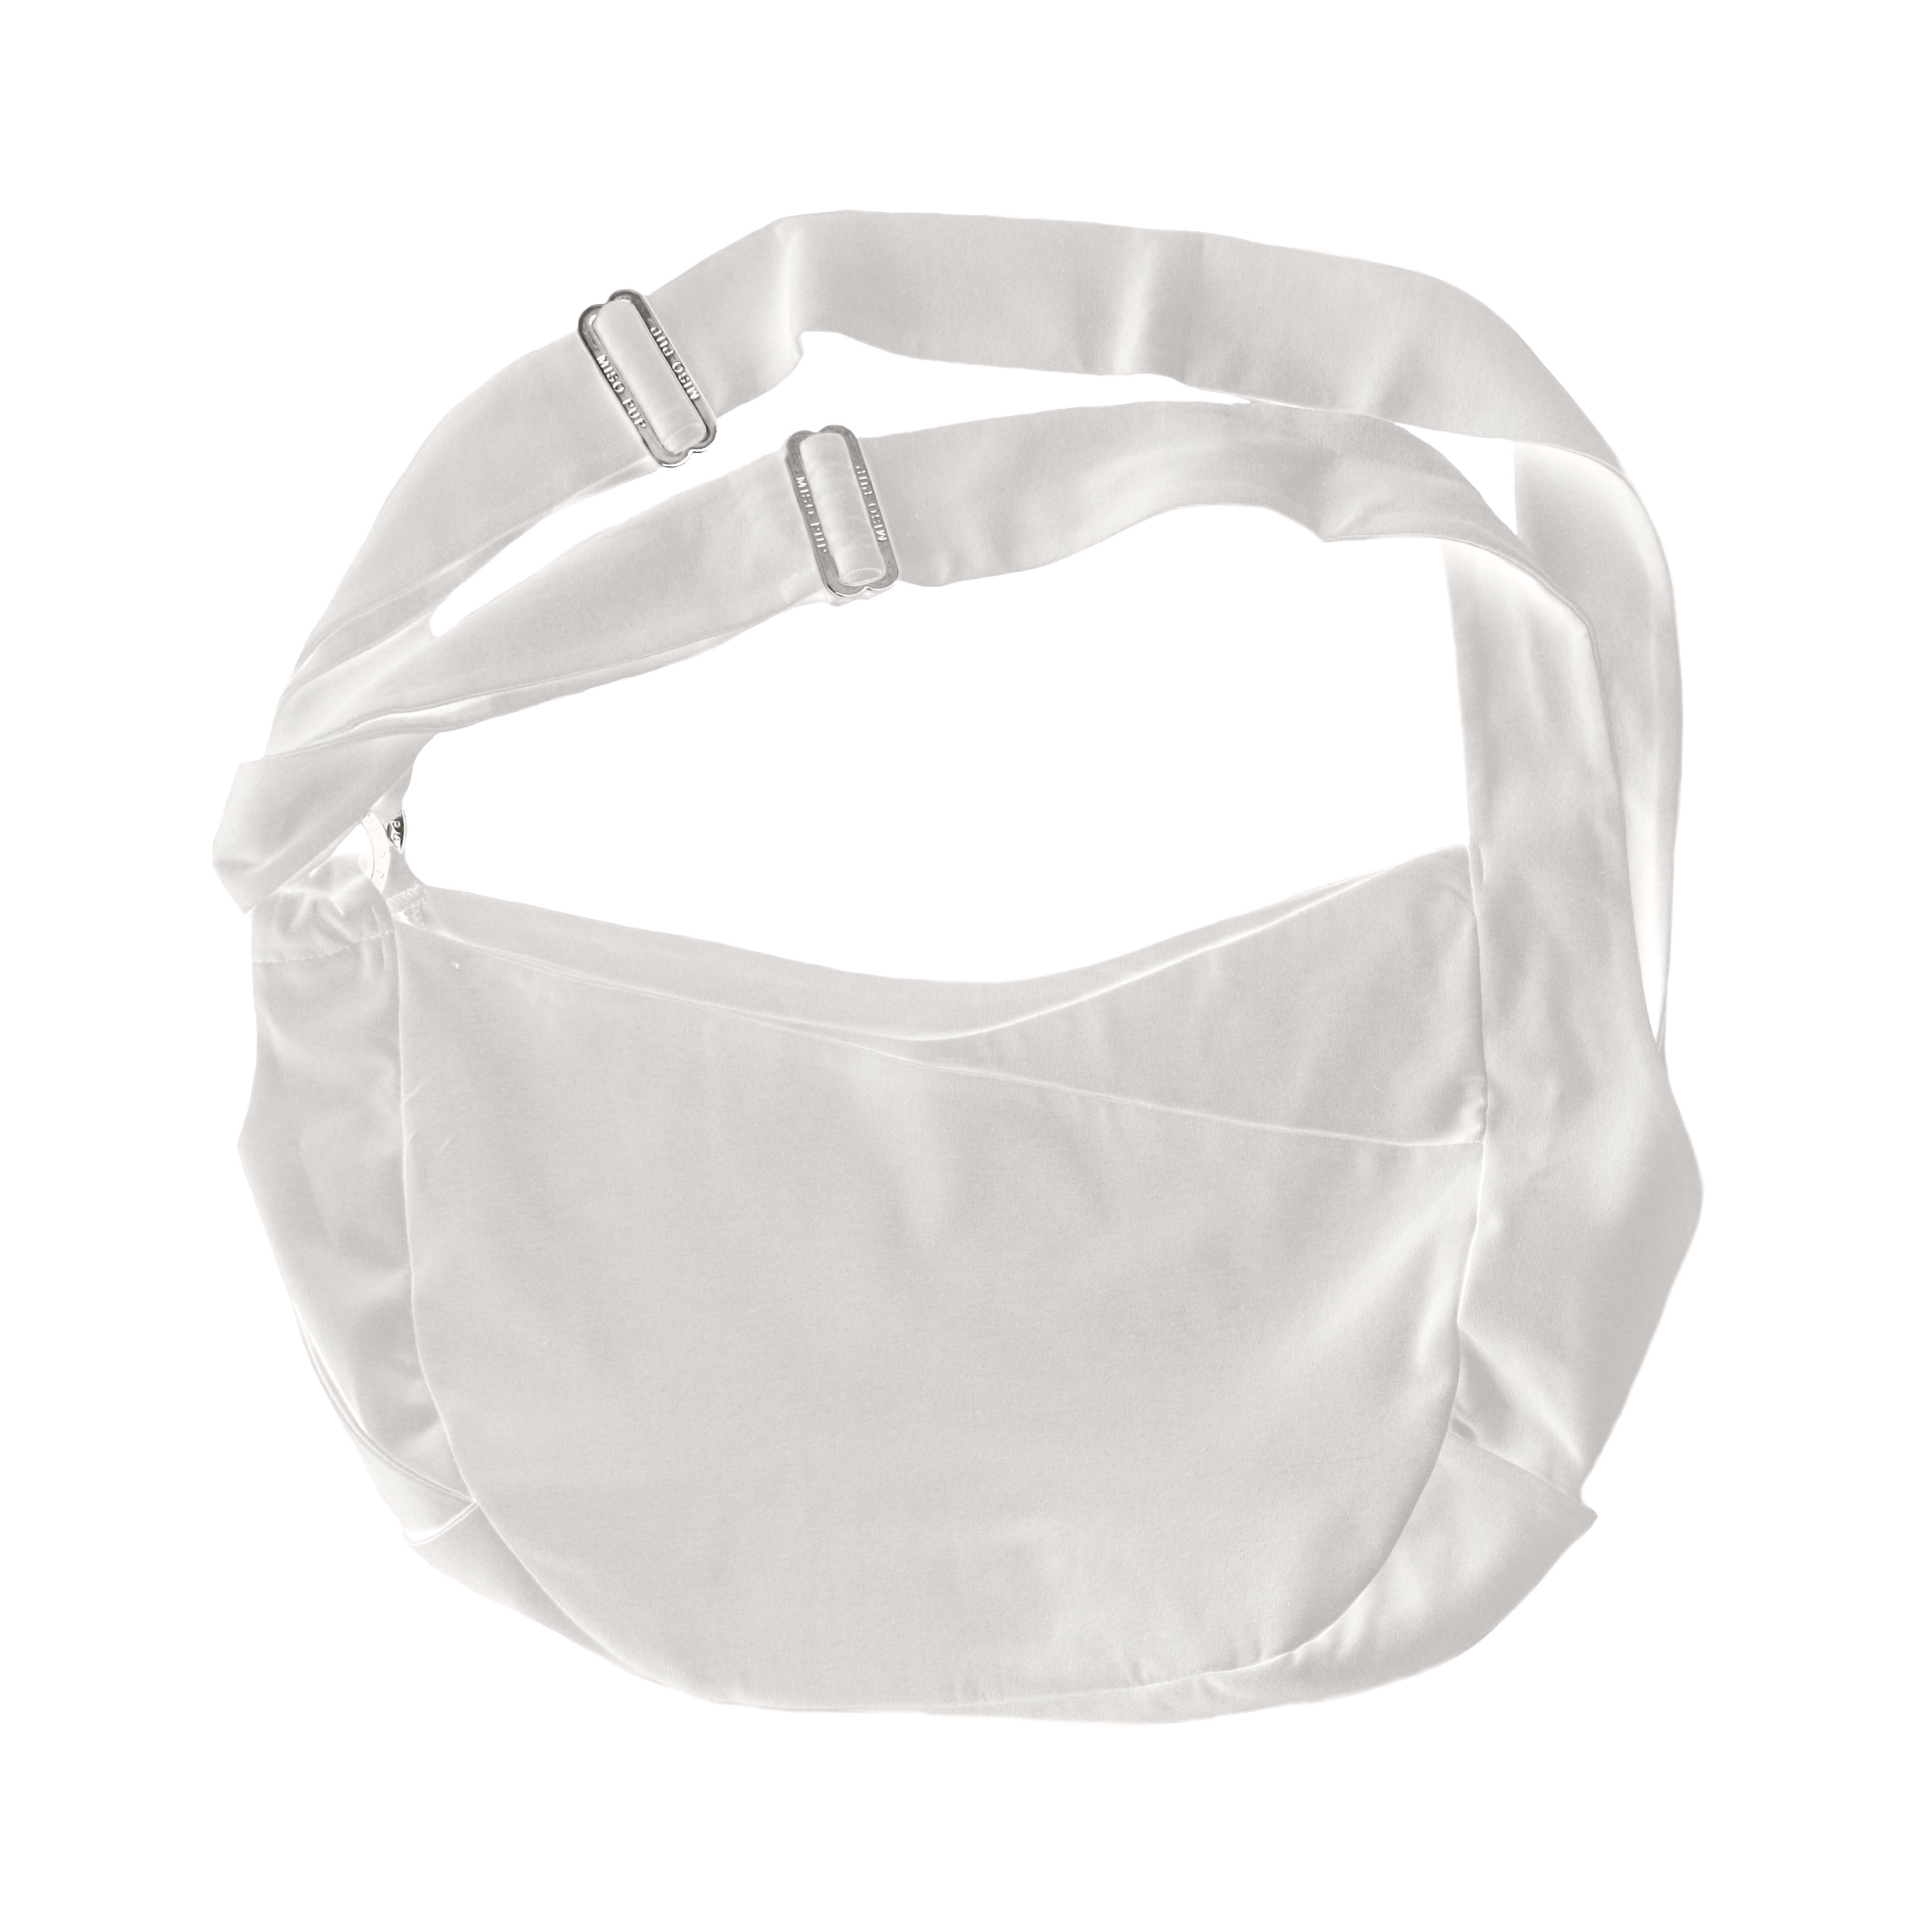 Miso Pup Dual Strap Sling White Silver